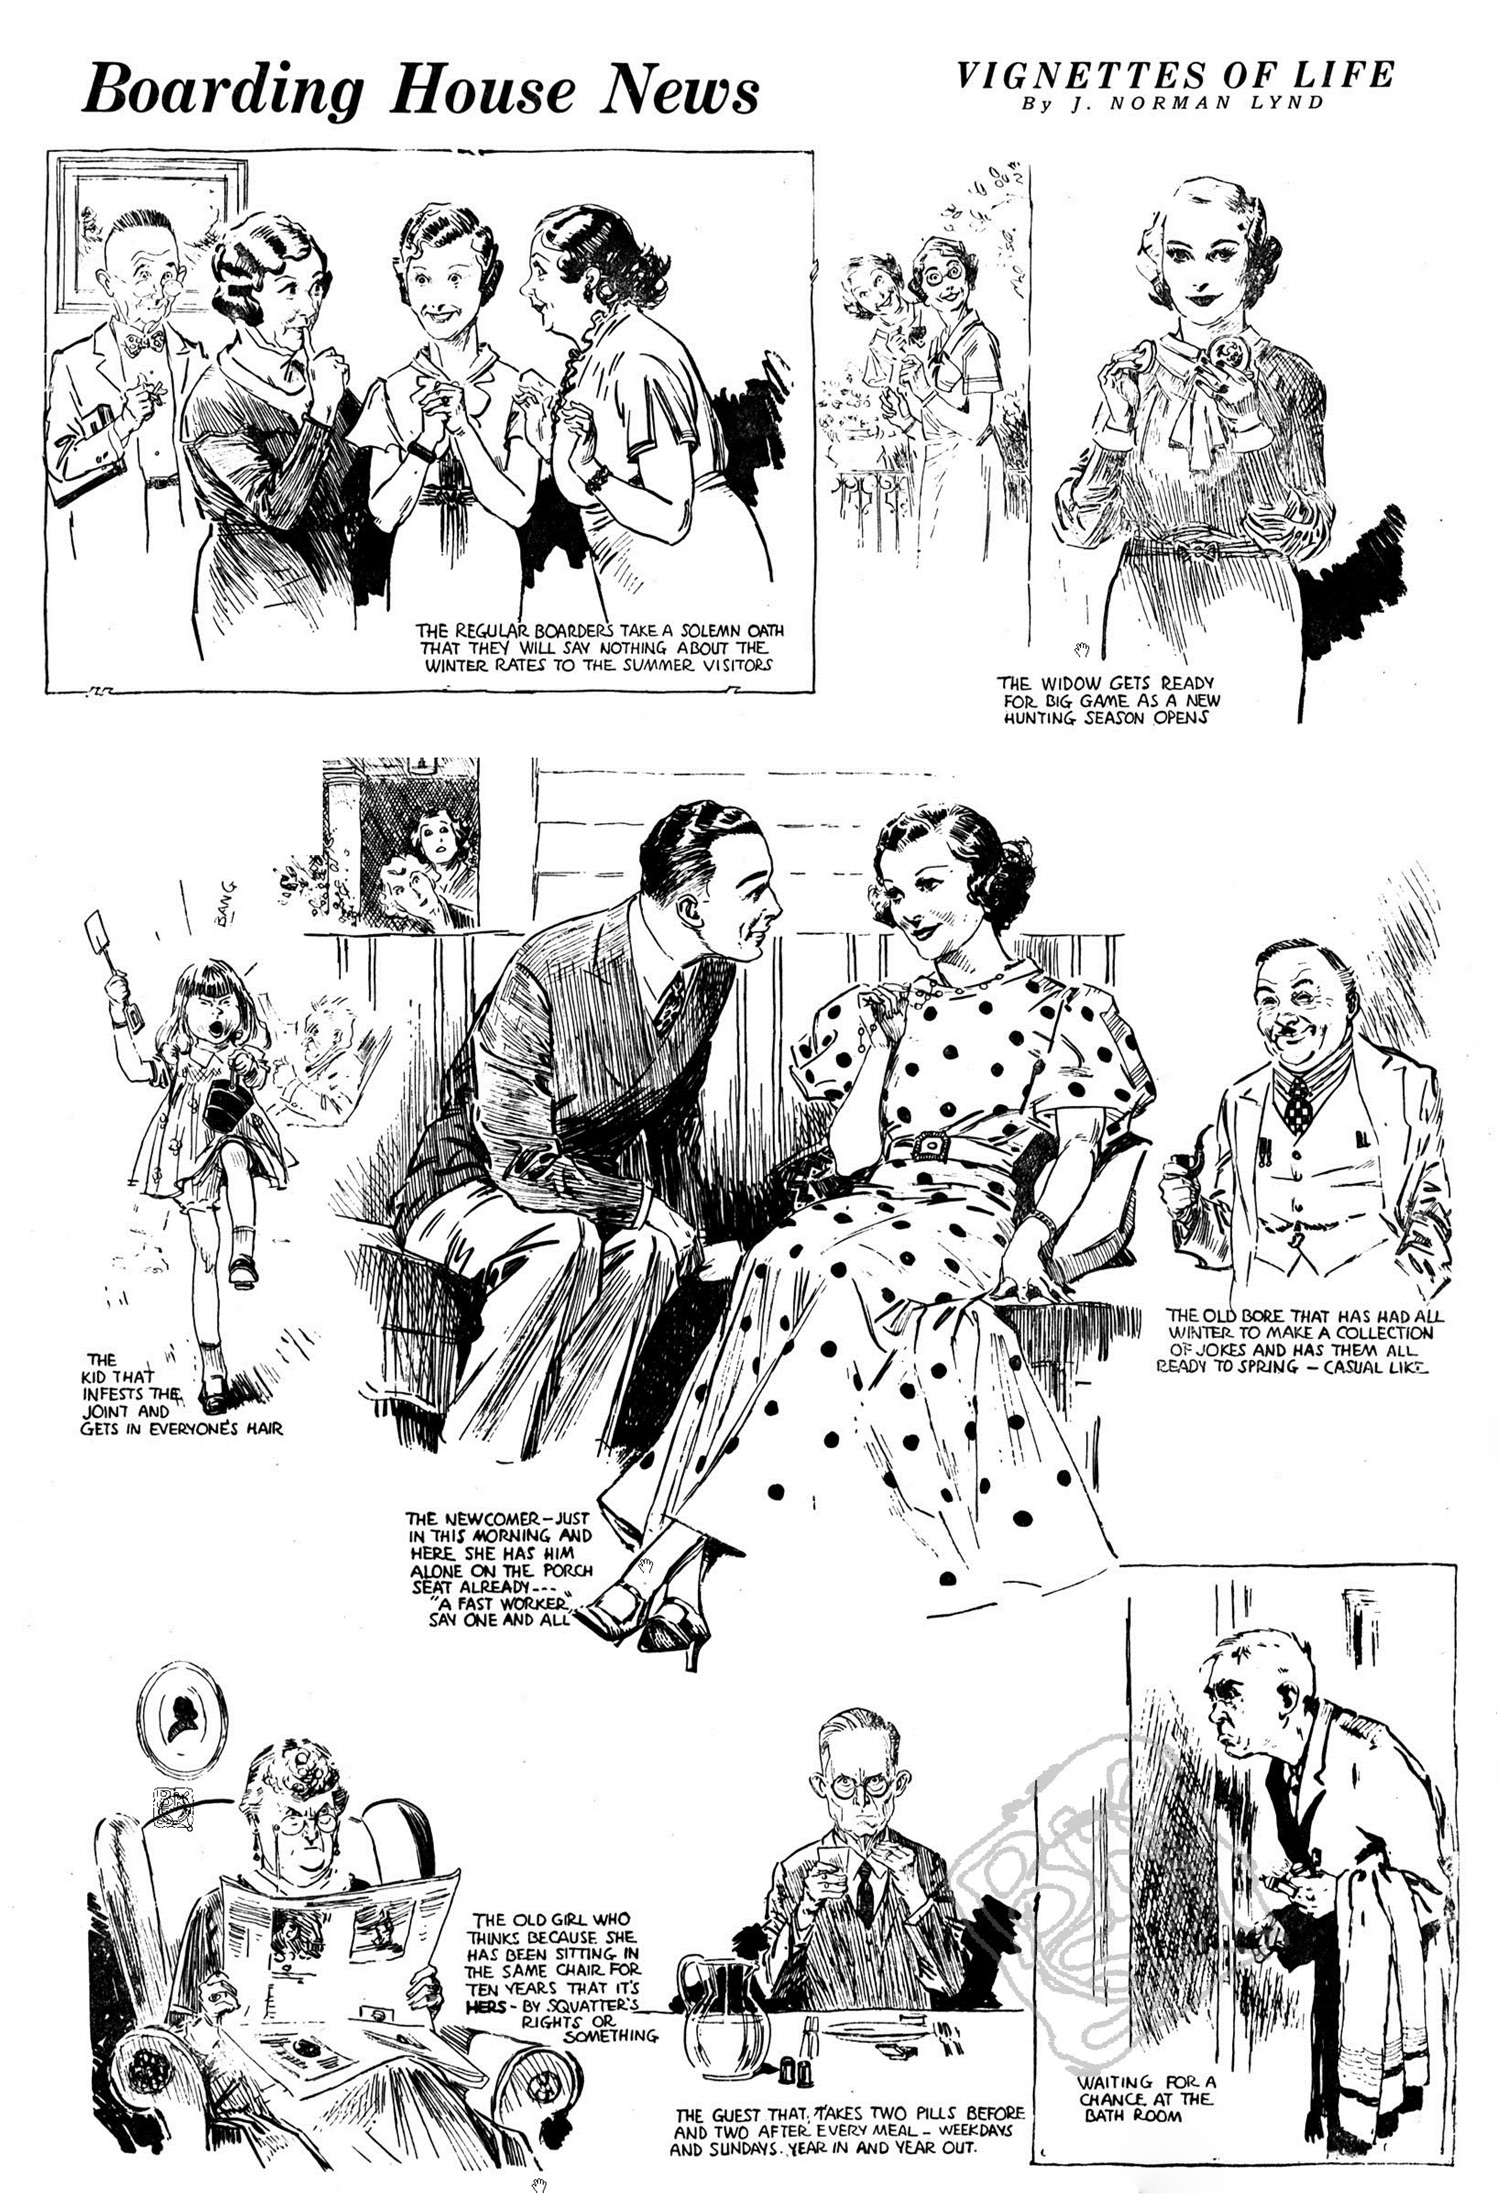 Boarding-House-News-Comic-1935-NCDN-CNBKSY-sm.jpg